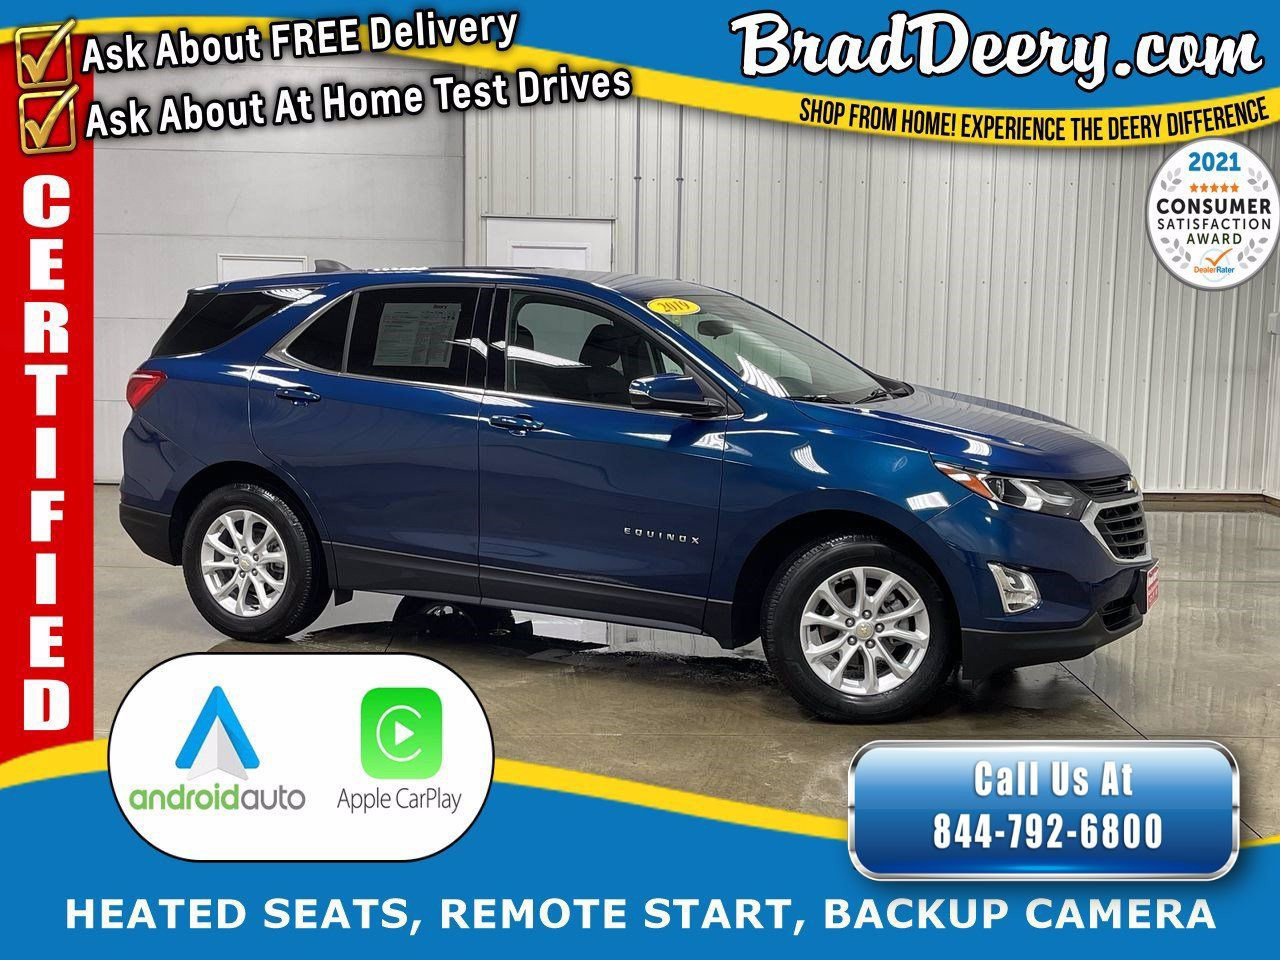 2019 Chevrolet Equinox LT   **GM CERTIFIED** w/ Heated Seats, Remote Start, Back-Up Camera & Power Liftgate